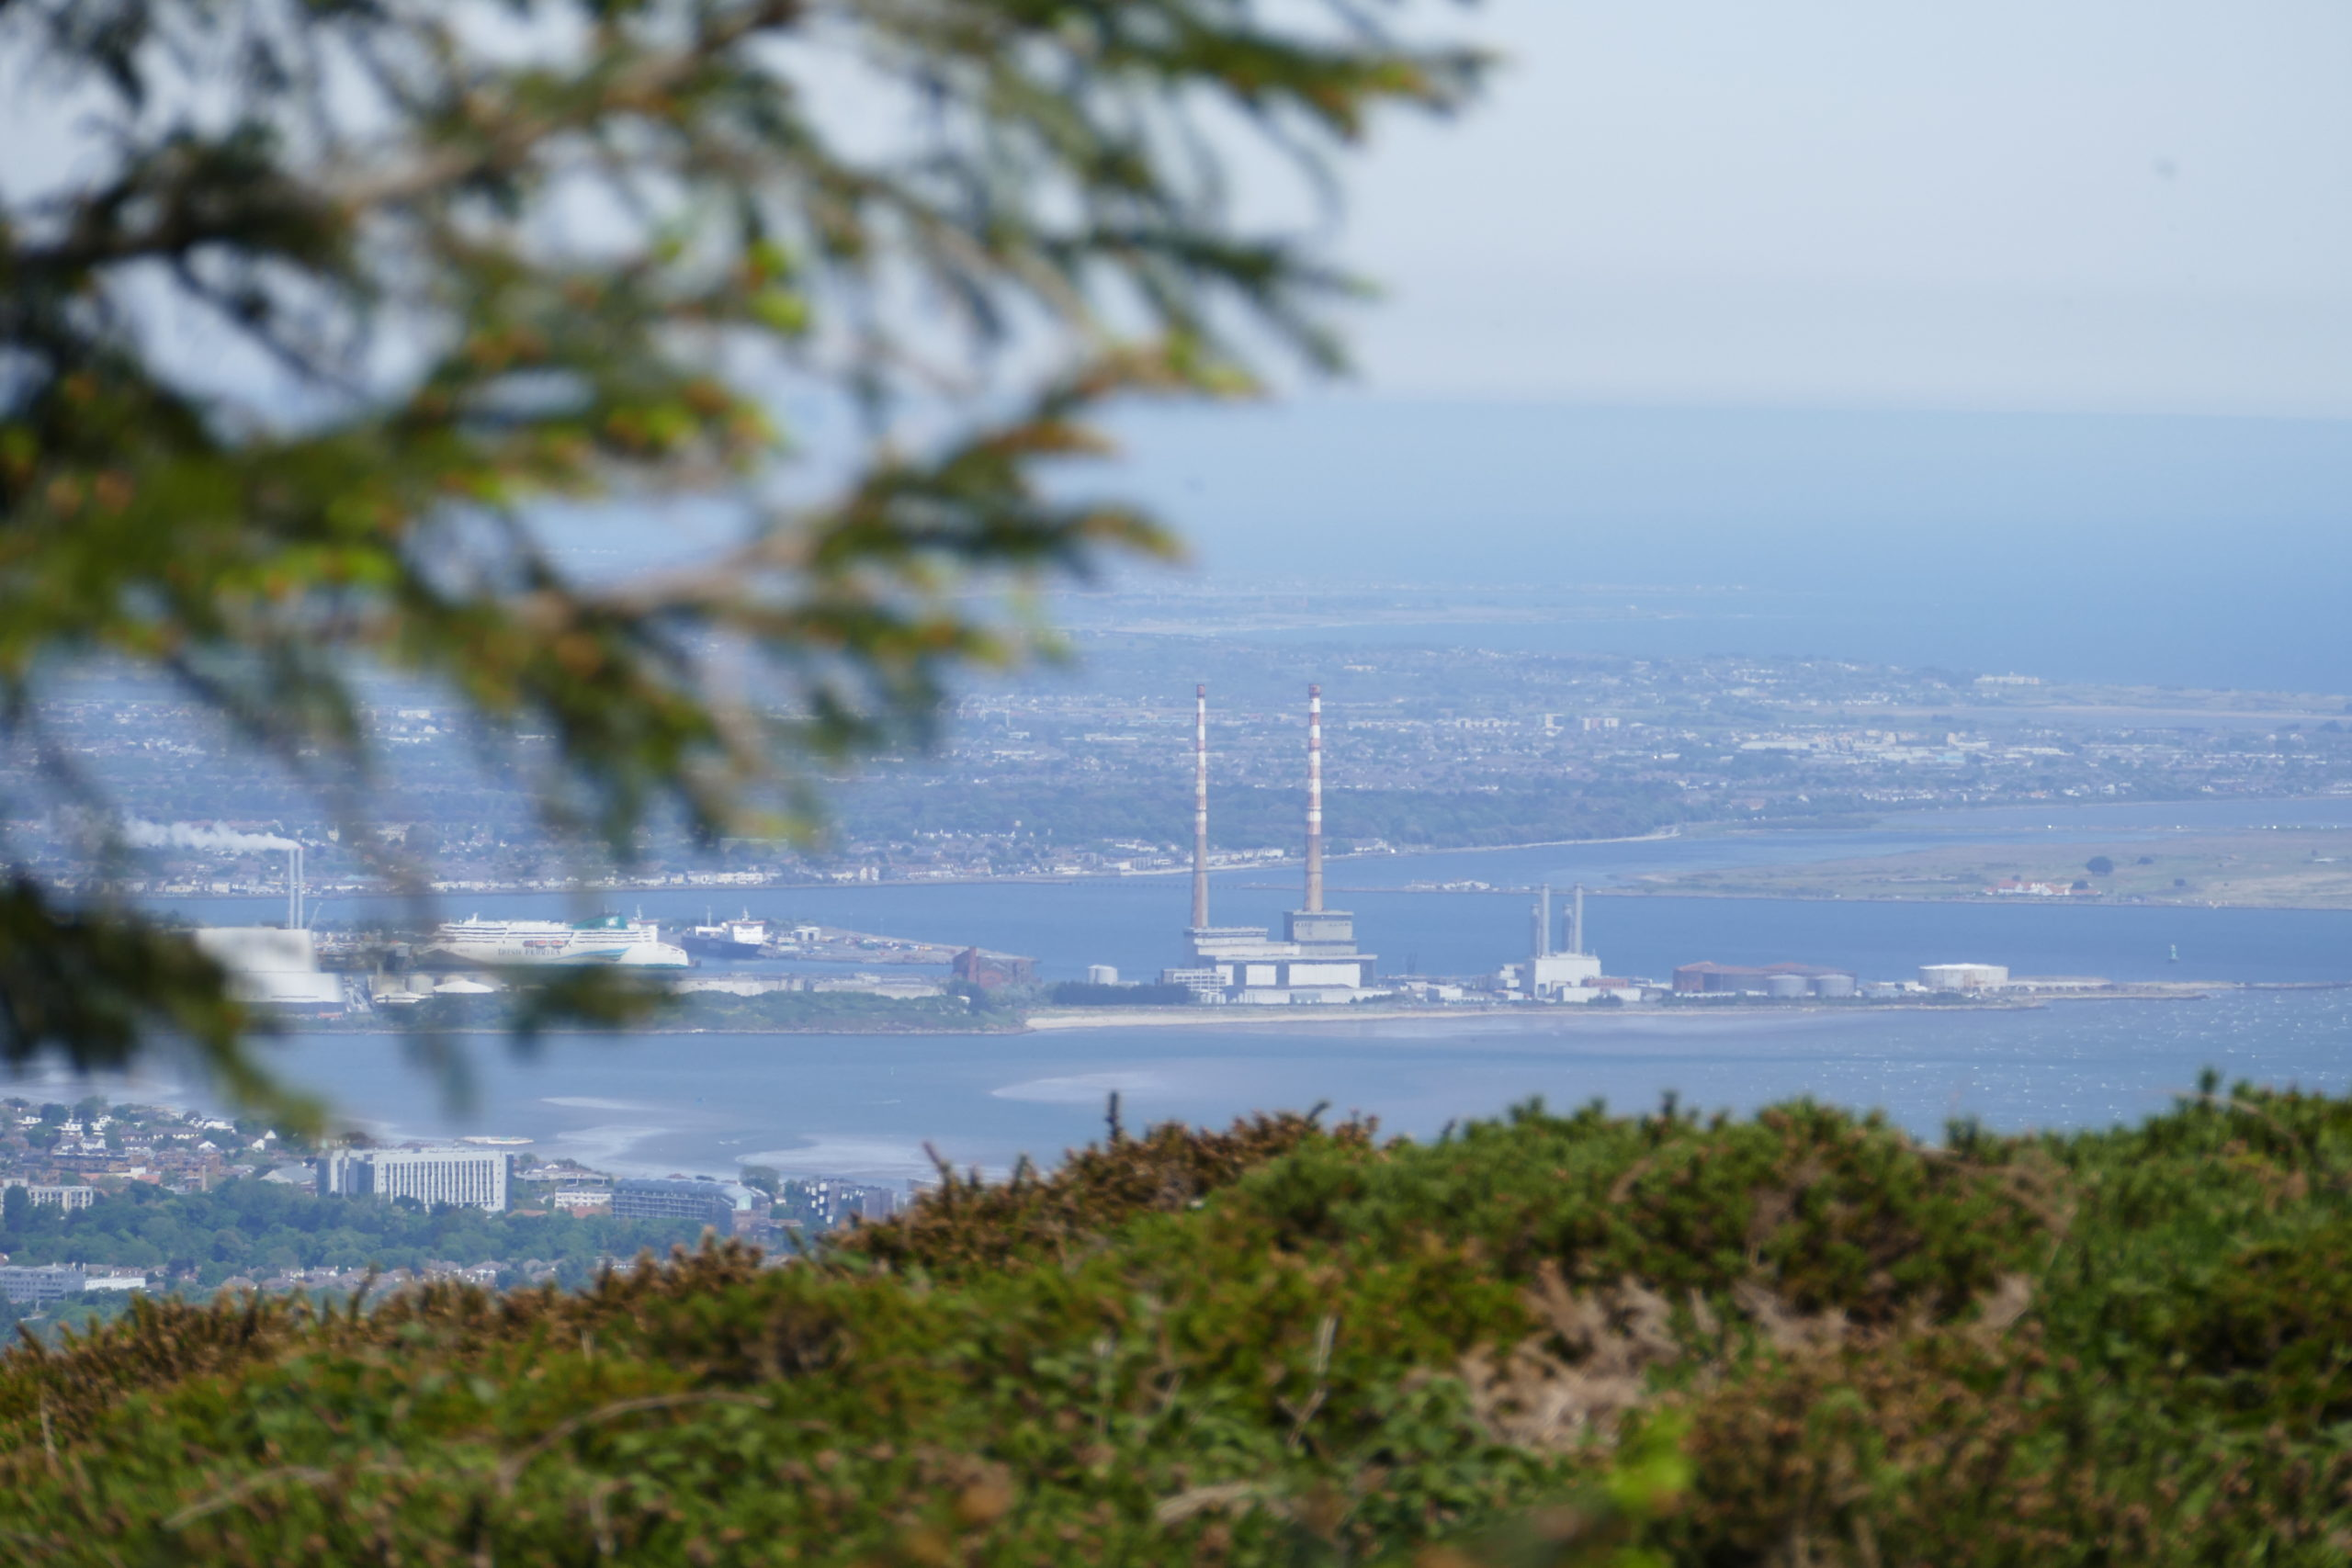 Picture of Dublin taken from Coillte's dublin mountain forests